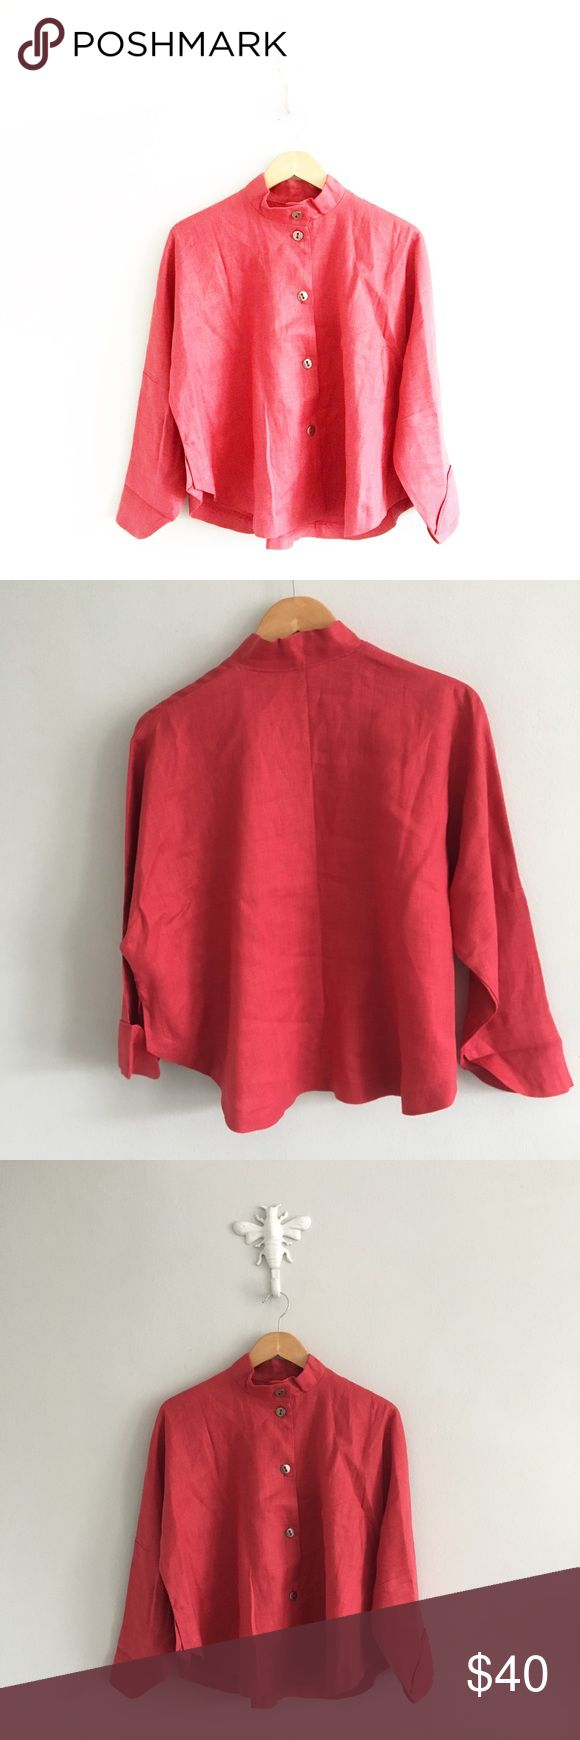 """ITEMZ by CHRIS BAUMGARTNER Red Linen Blouse Gently pre-loved with no rips or stains. Please see all pictures for an accurate description of condition. 100% linen. Chest: 54"""". Length: 23.5"""". One size fits most. F19. ITEMZ Tops Button Down Shirts"""